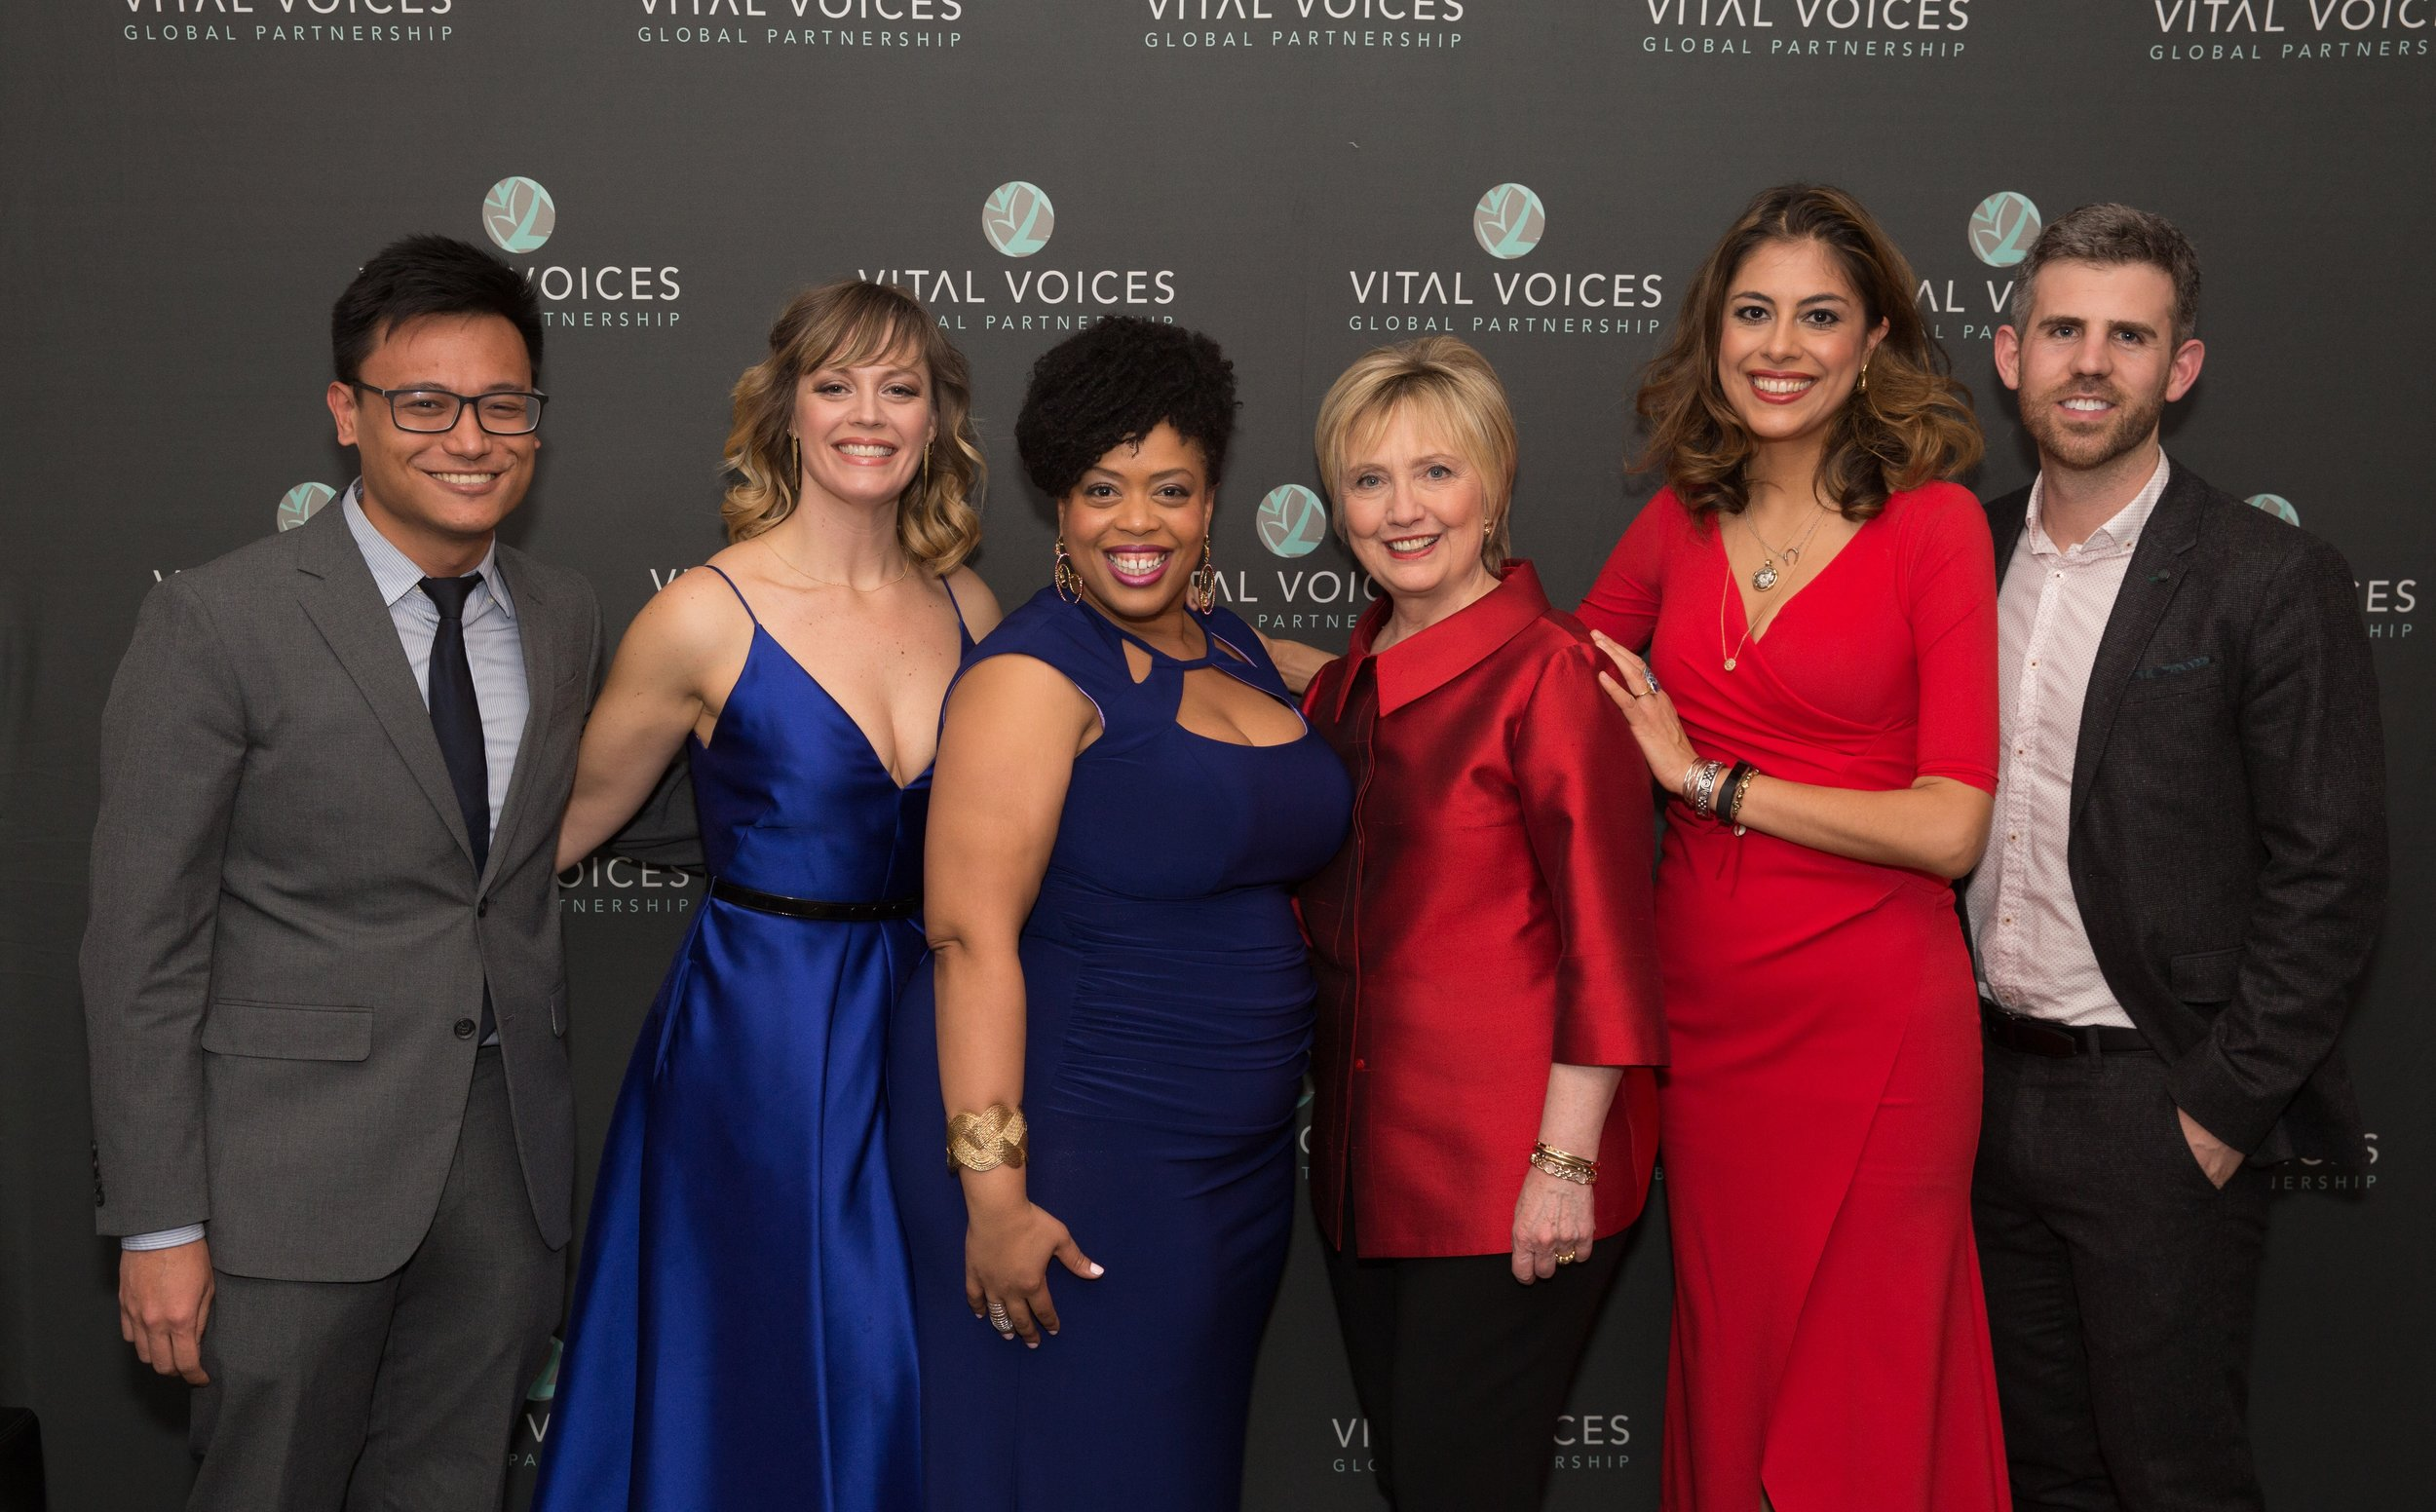 initial installment of  Hear Her Song  with Vital Voices left to right: Joshua Cerdenia, Elizabeth Stanley, Angela Grovey, Hillary Clinton, Carla Canales, Kurt Crowley